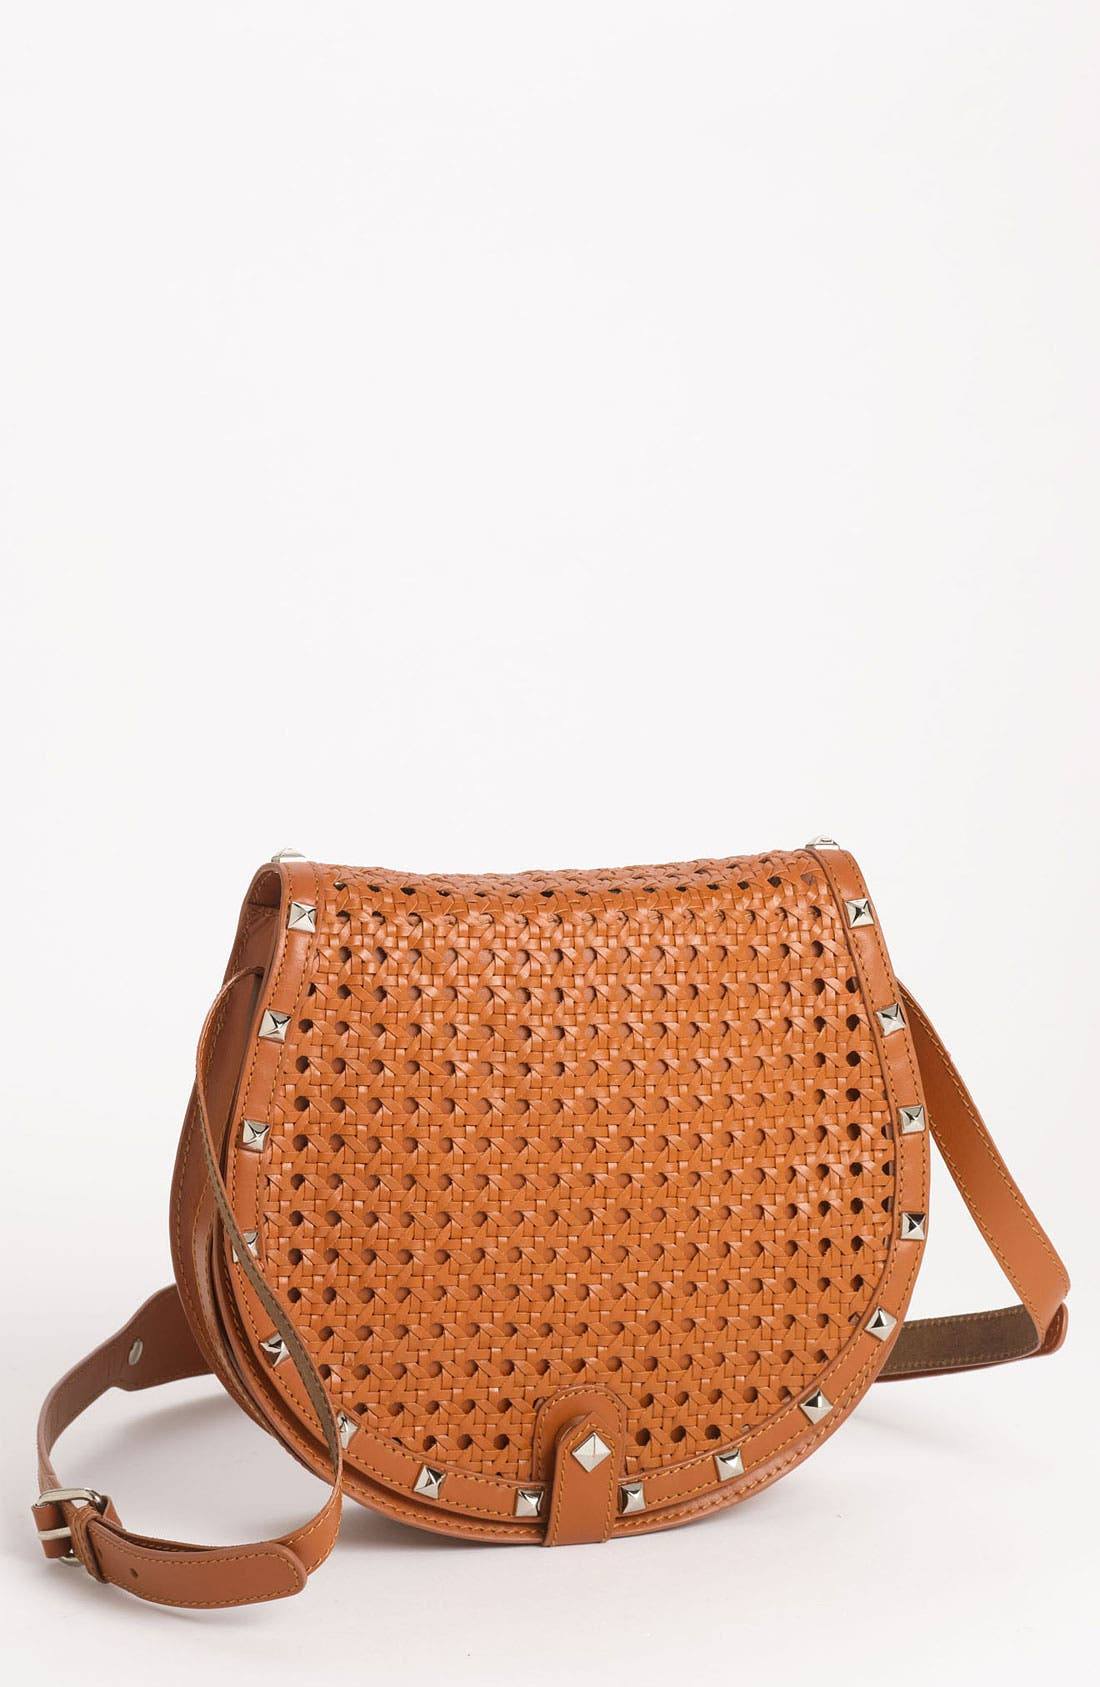 Alternate Image 1 Selected - Rebecca Minkoff 'Skylar - Wicker Woven' Leather Crossbody Bag